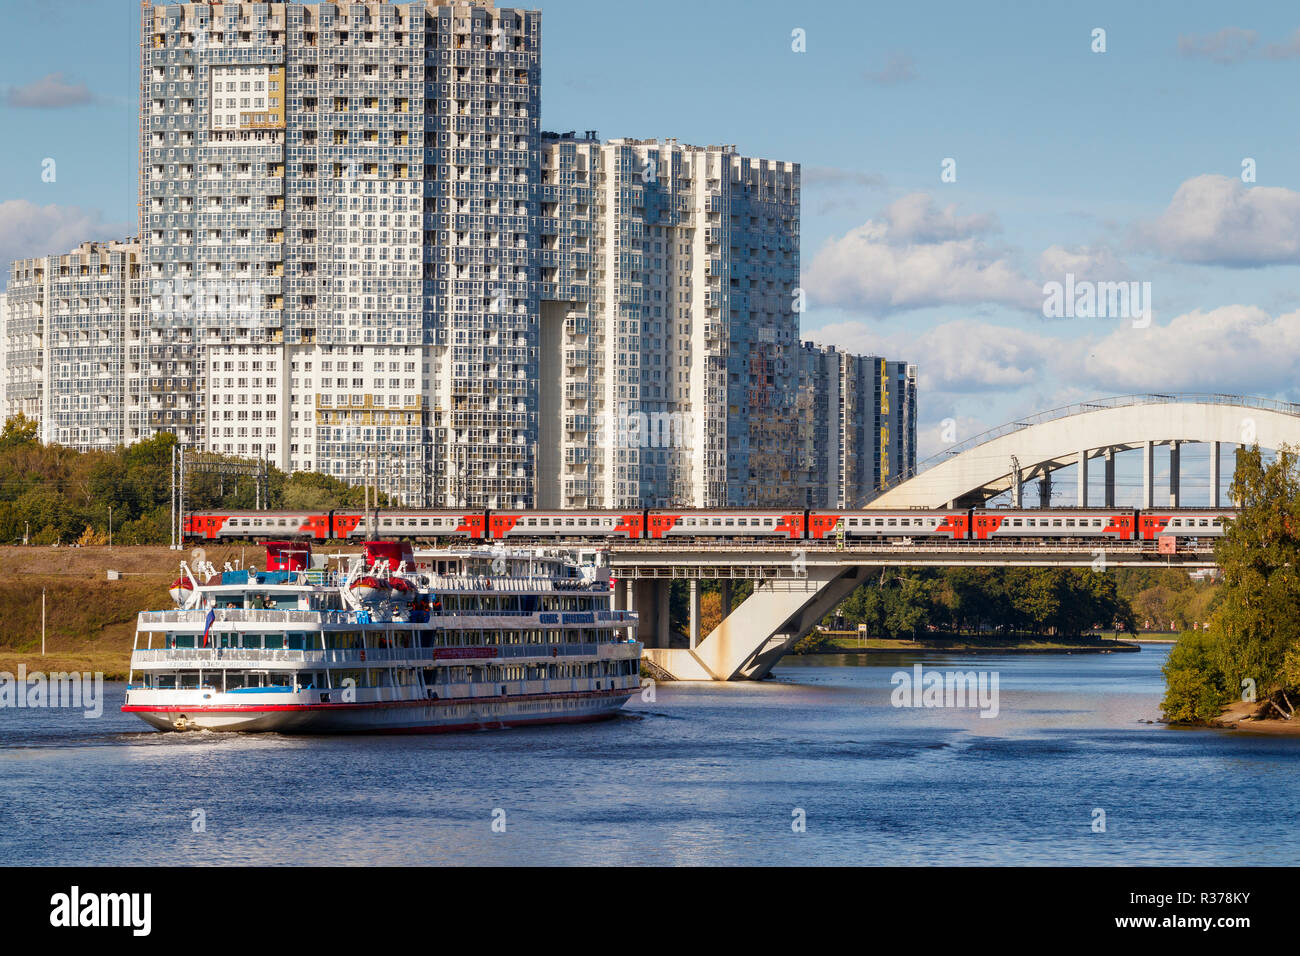 The 1978 Felix Dzerzhinsky cruise ship on the Moscow Canal in central Moscow as it approaches a railway bridge with train crossing, Russia. - Stock Image